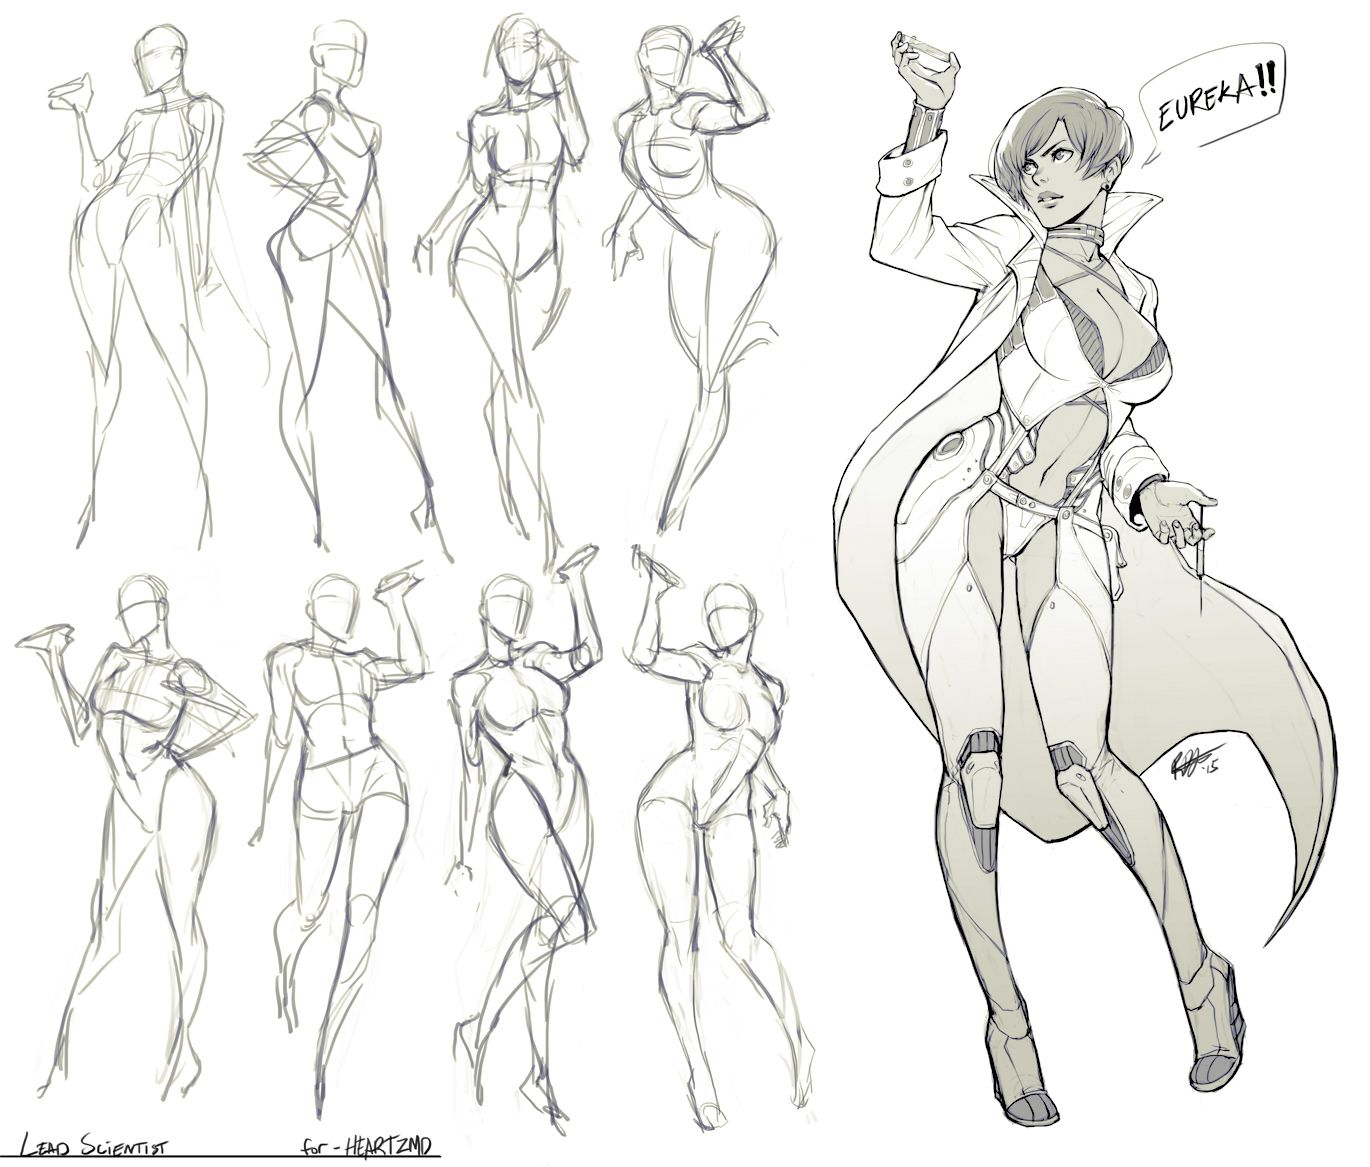 Commission Dr Meagan Heart Art Reference Poses Art Reference Art Poses